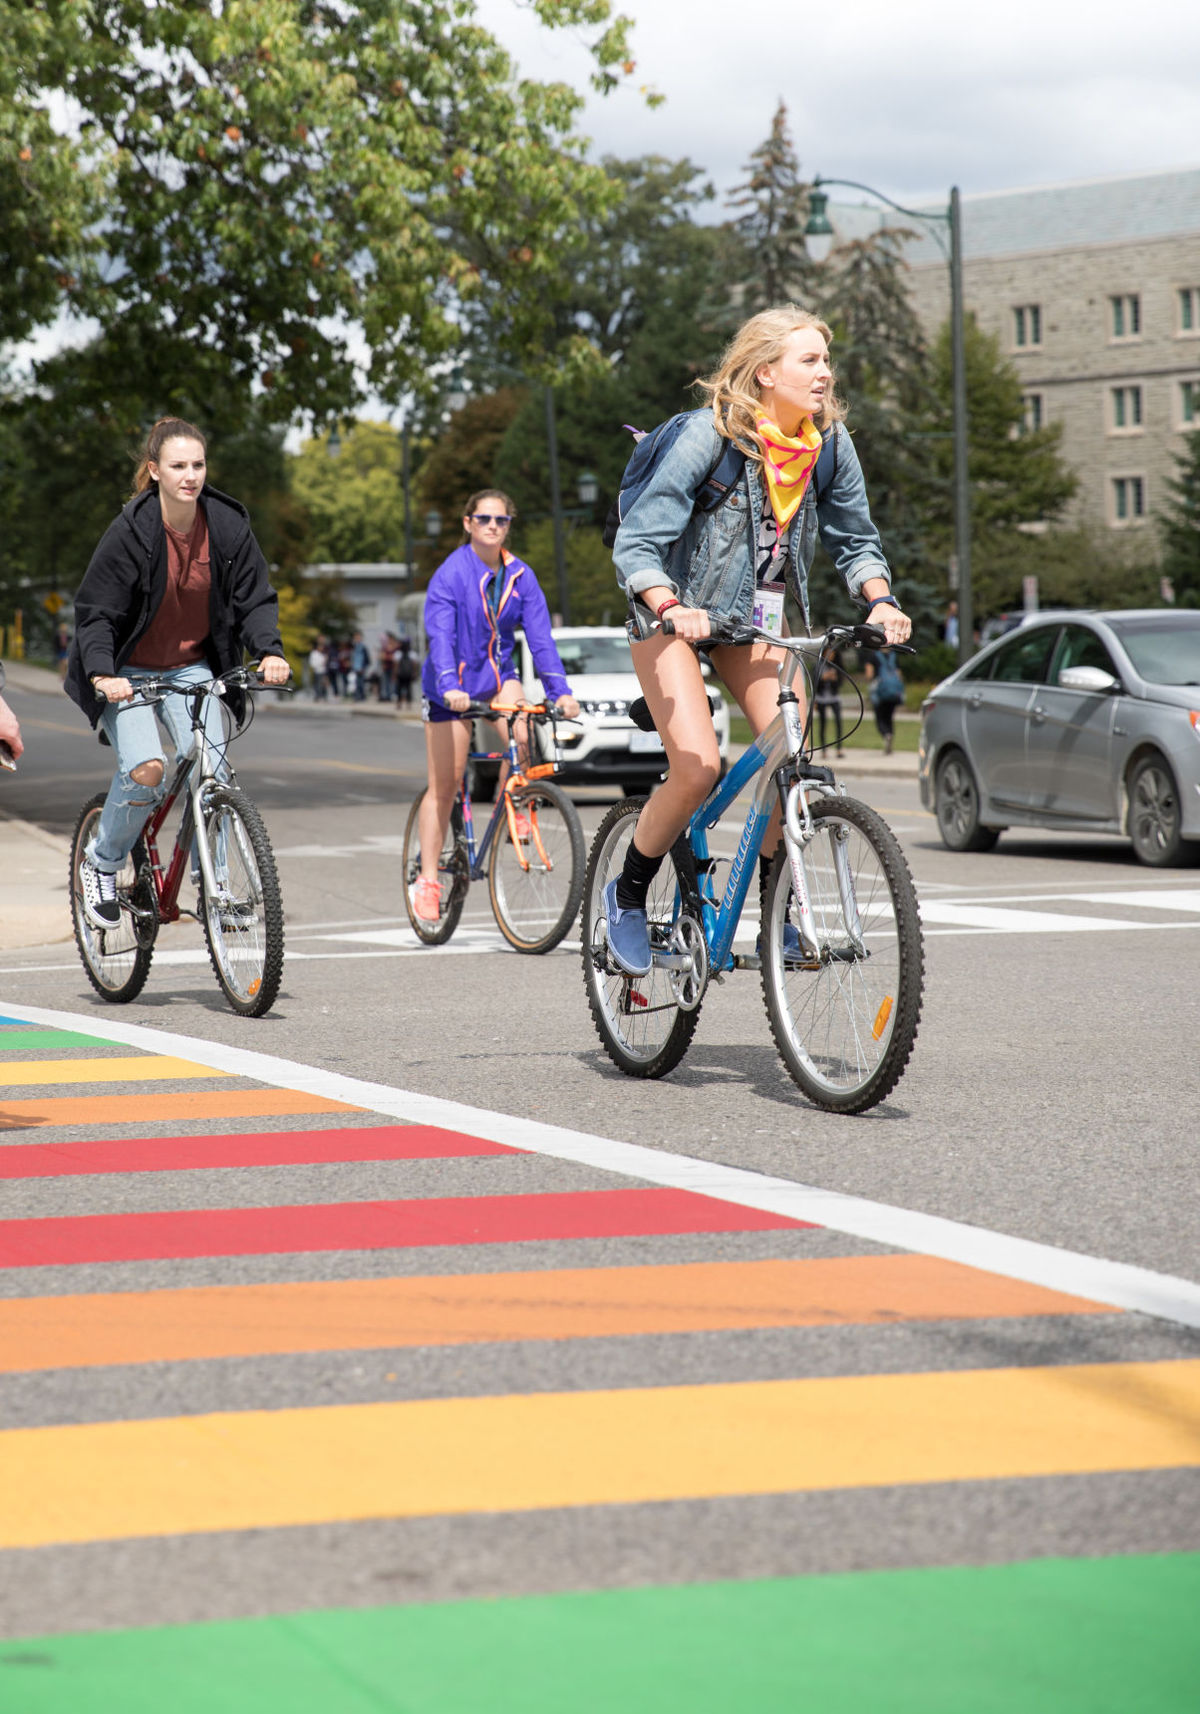 Cyclist Accidents Create Debate On Campus